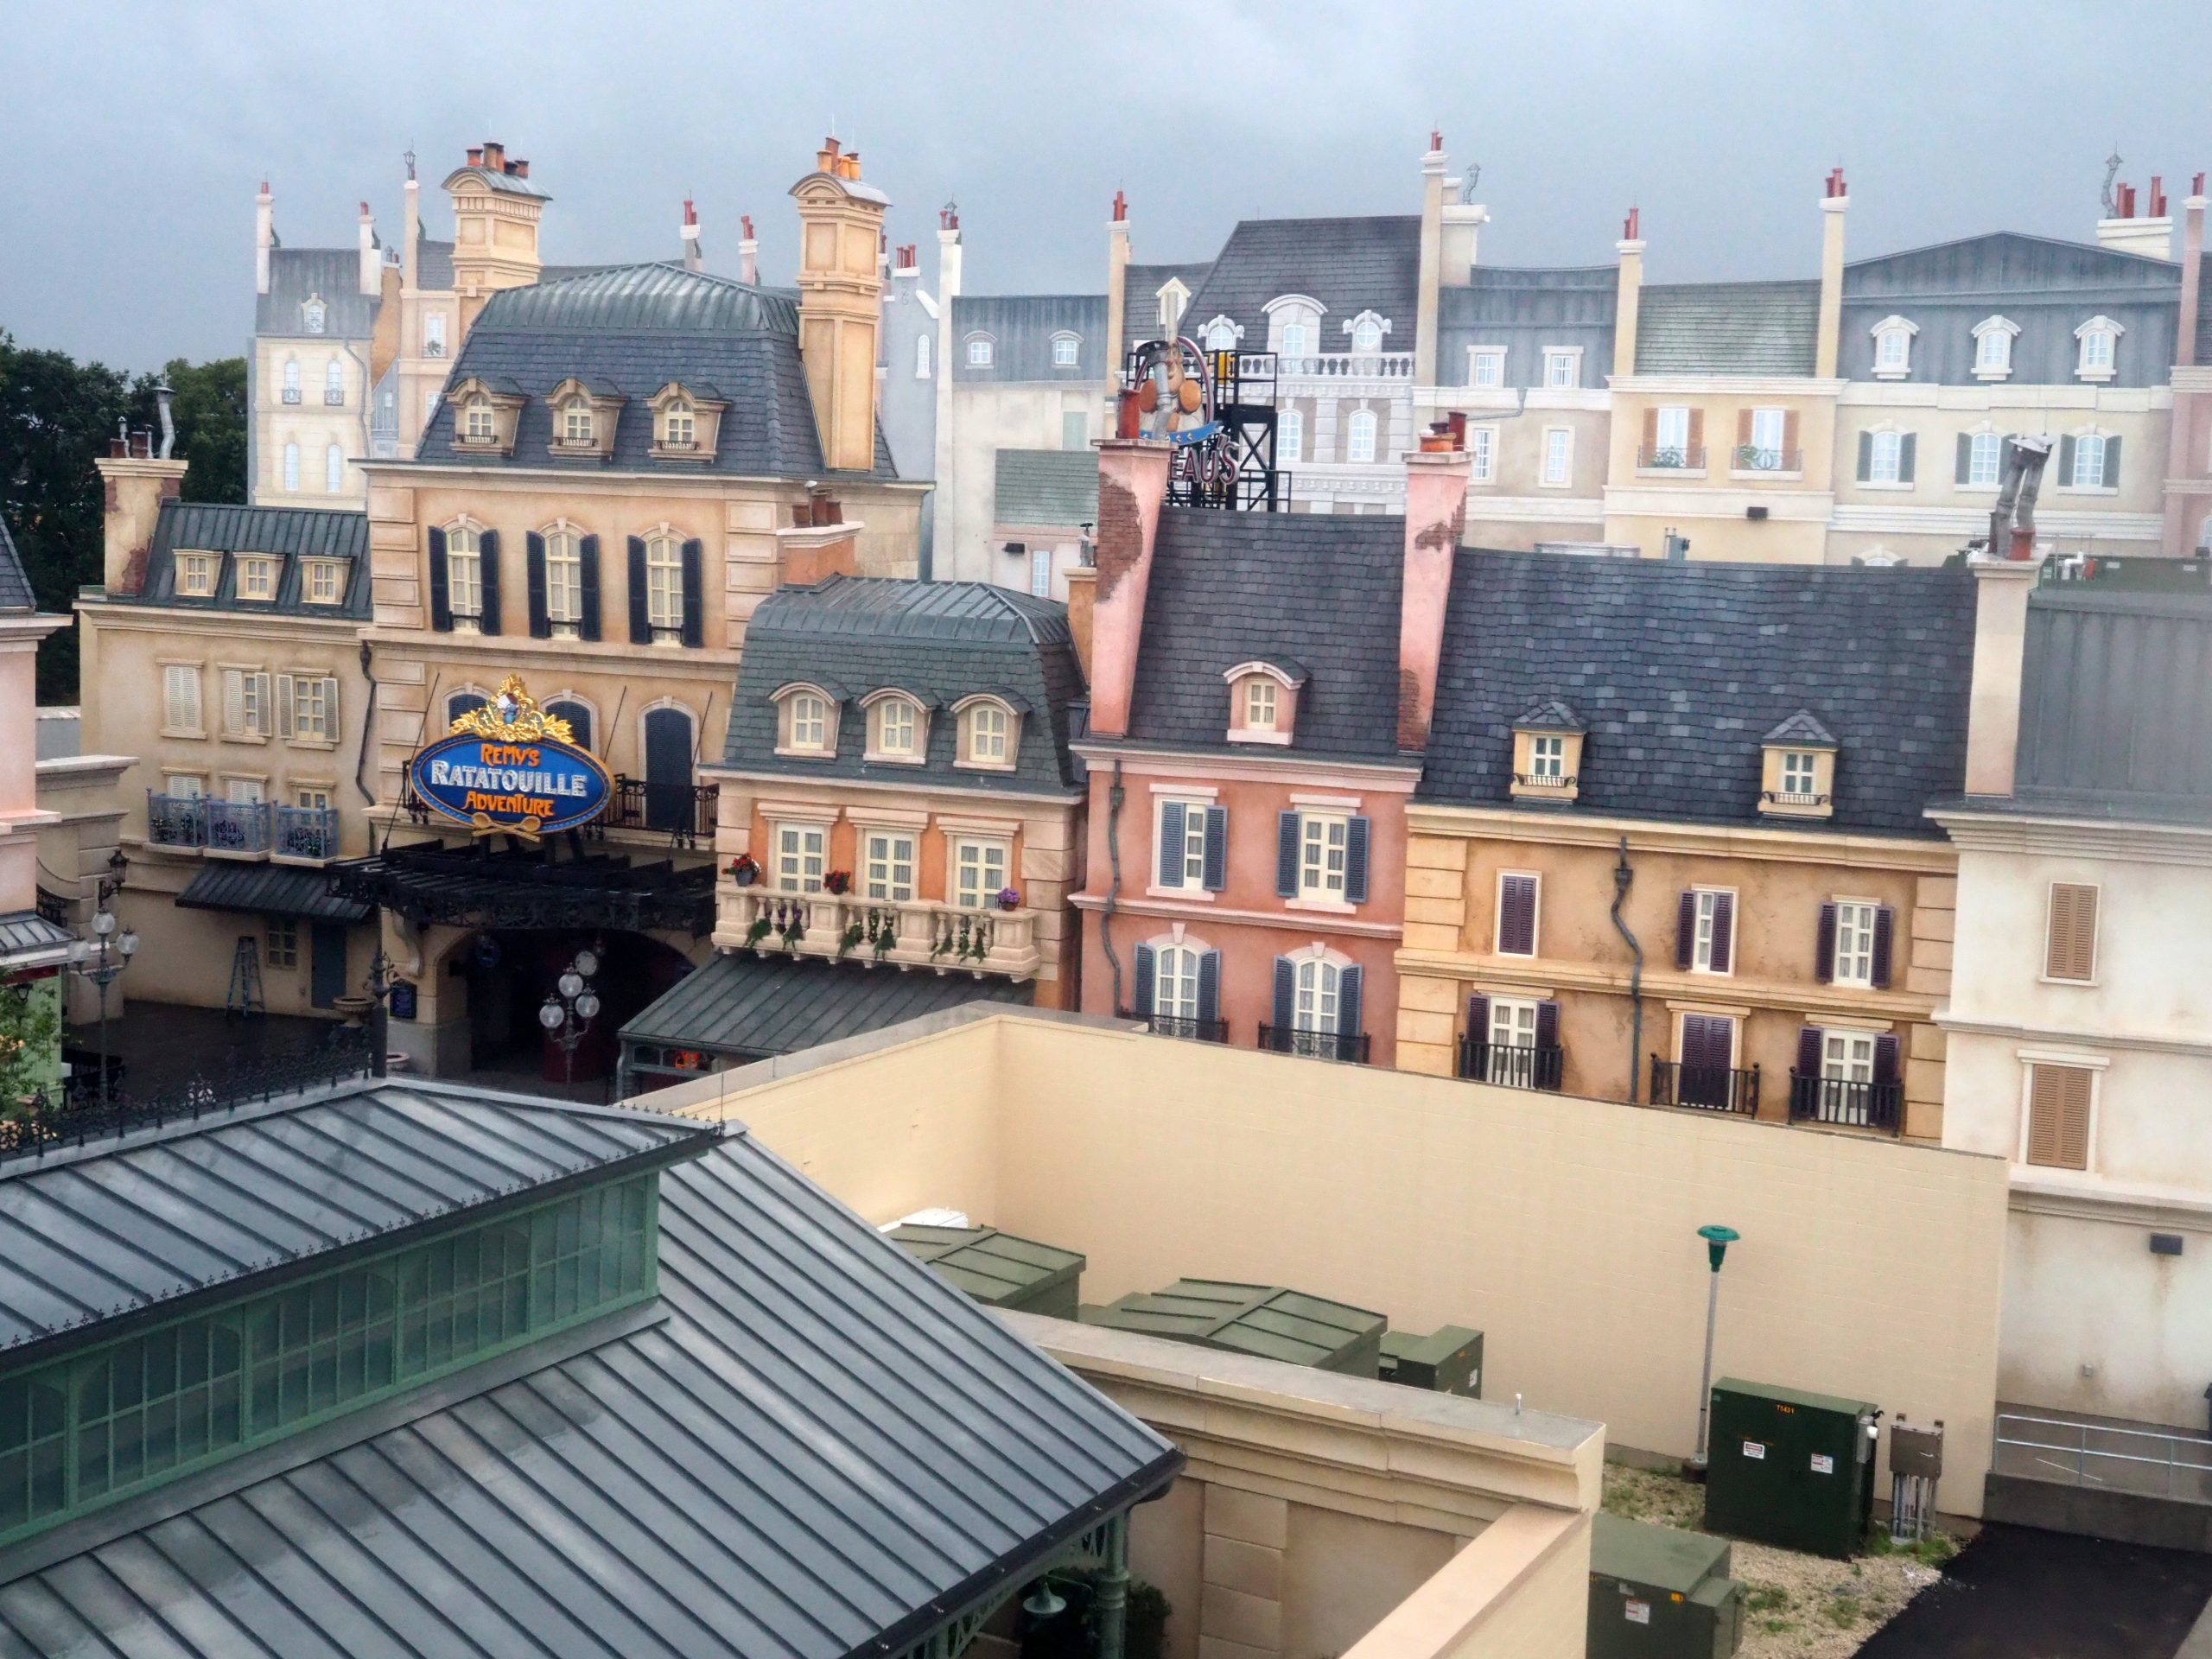 Remy's Ratatouille Adventure and Courtyard in EPCOT France